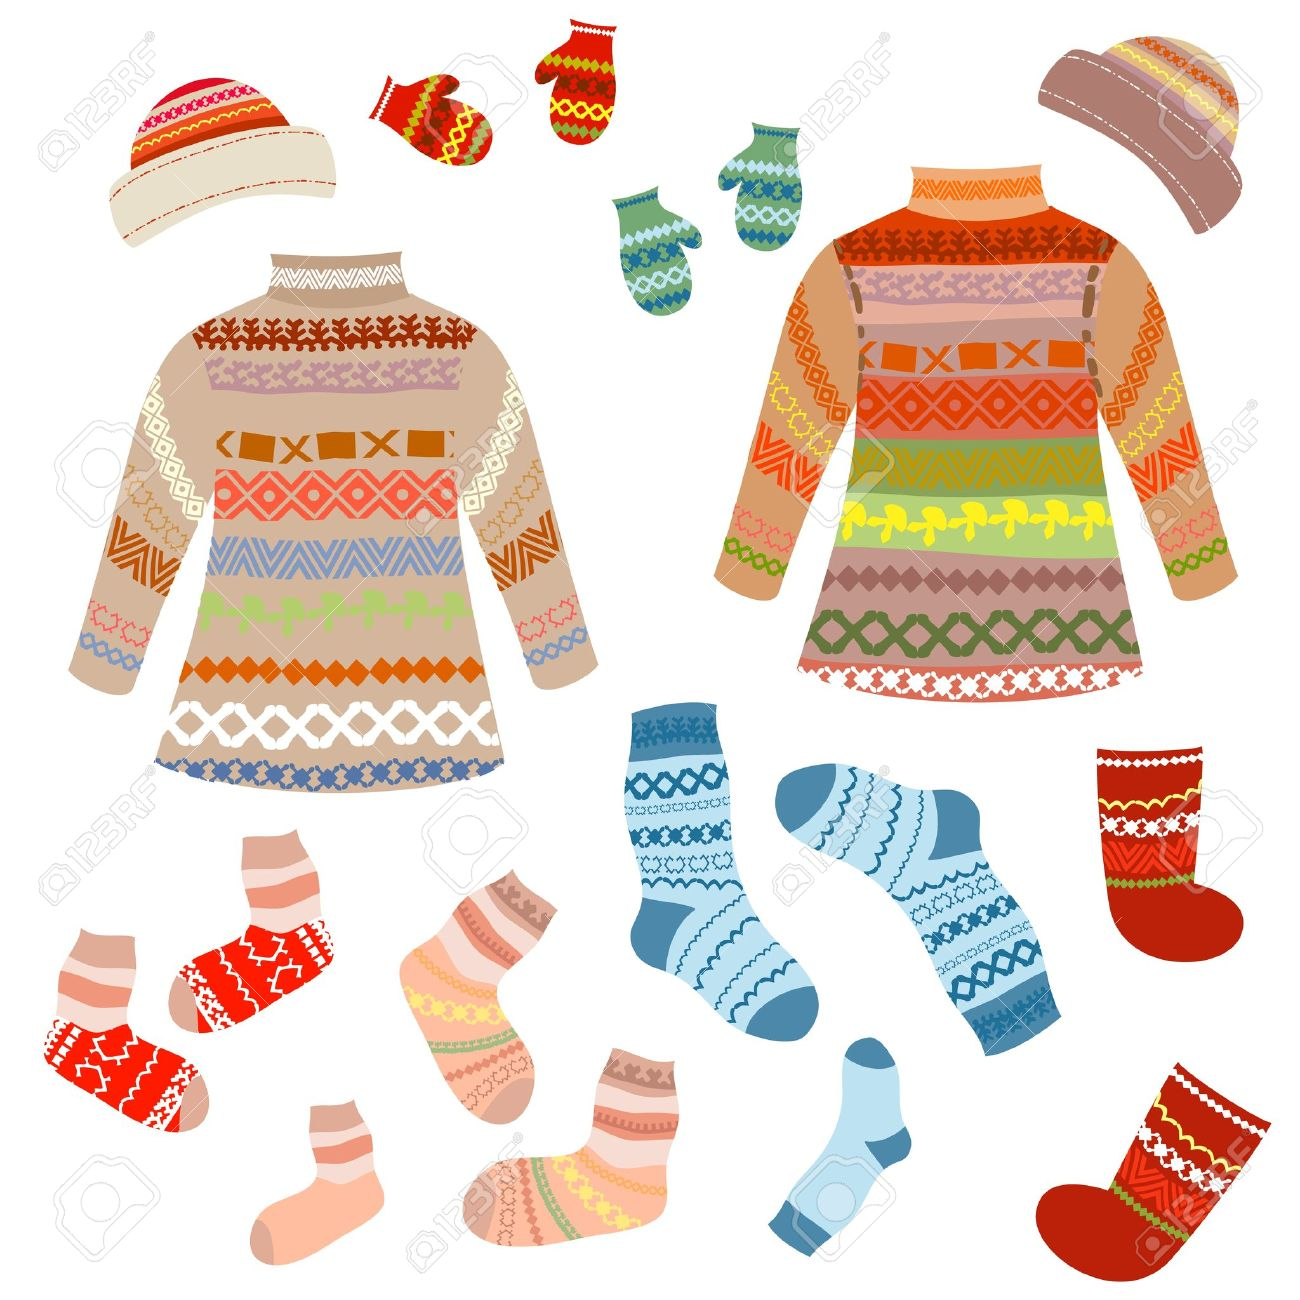 Knit socks clipart #15